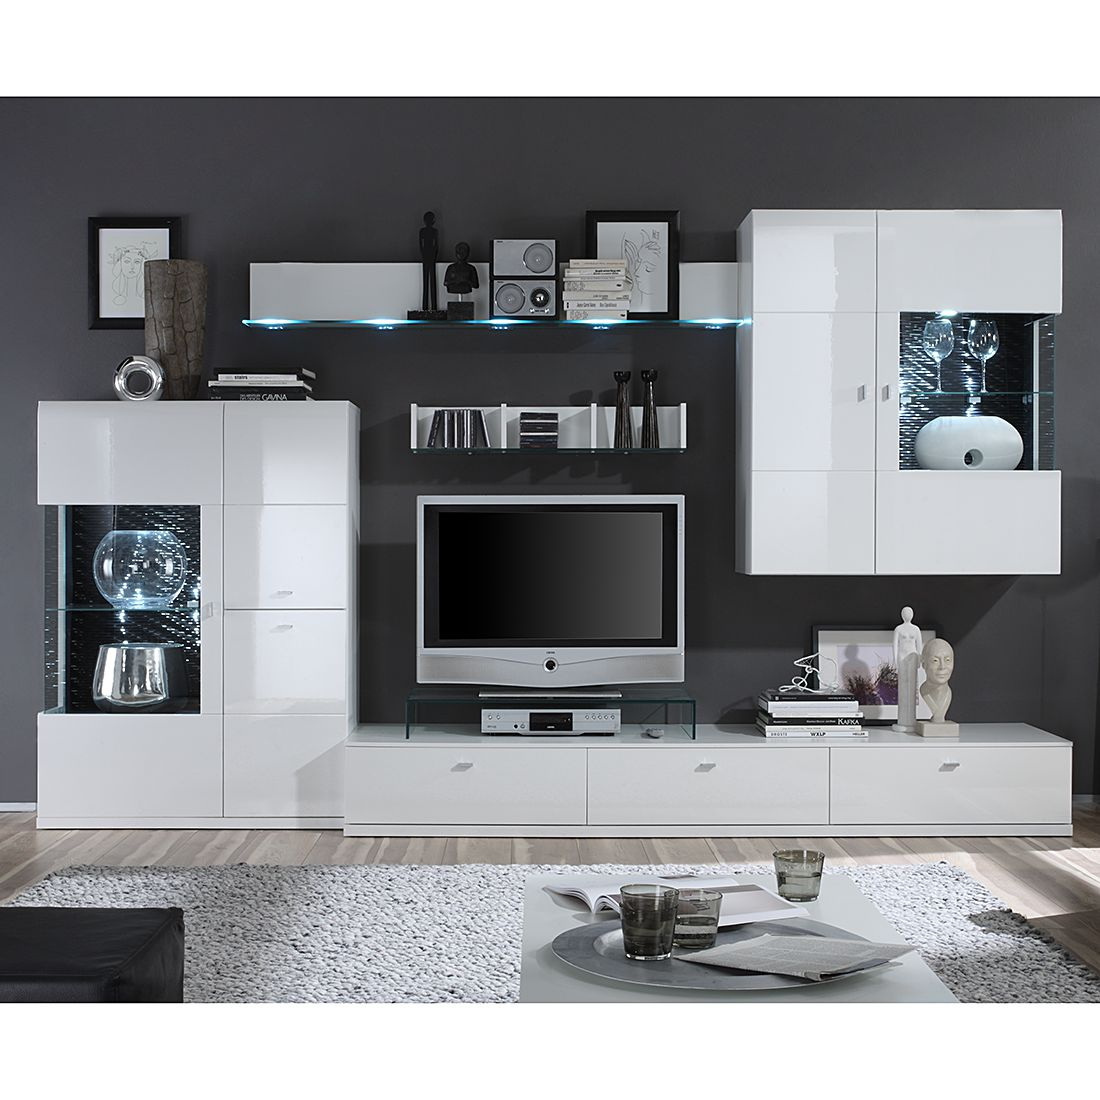 otto schrankwand nussbaum interessante ideen f r die gestaltung eines raumes in. Black Bedroom Furniture Sets. Home Design Ideas